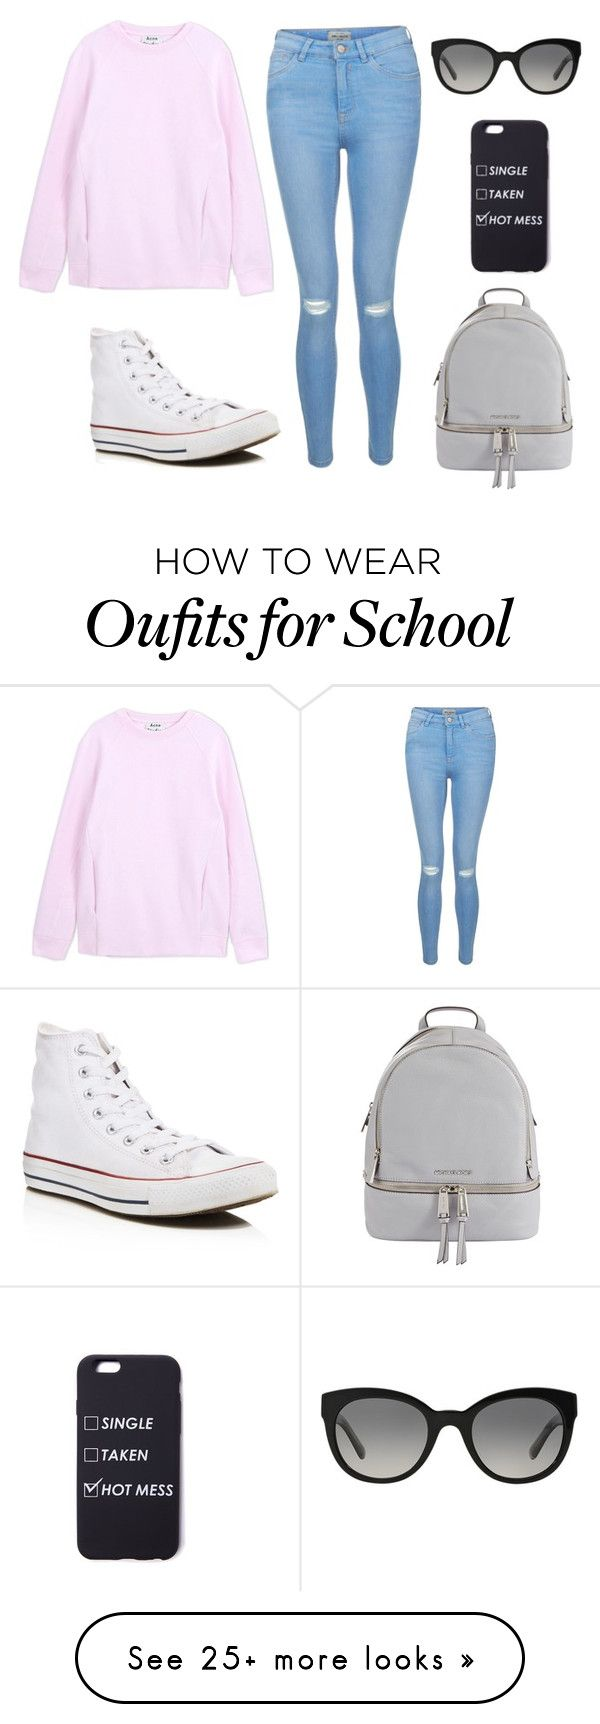 """Day at school"" by ally-sjo on Polyvore featuring New Look, Converse, Acne Studios, Burberry and MICHAEL Michael Kors"